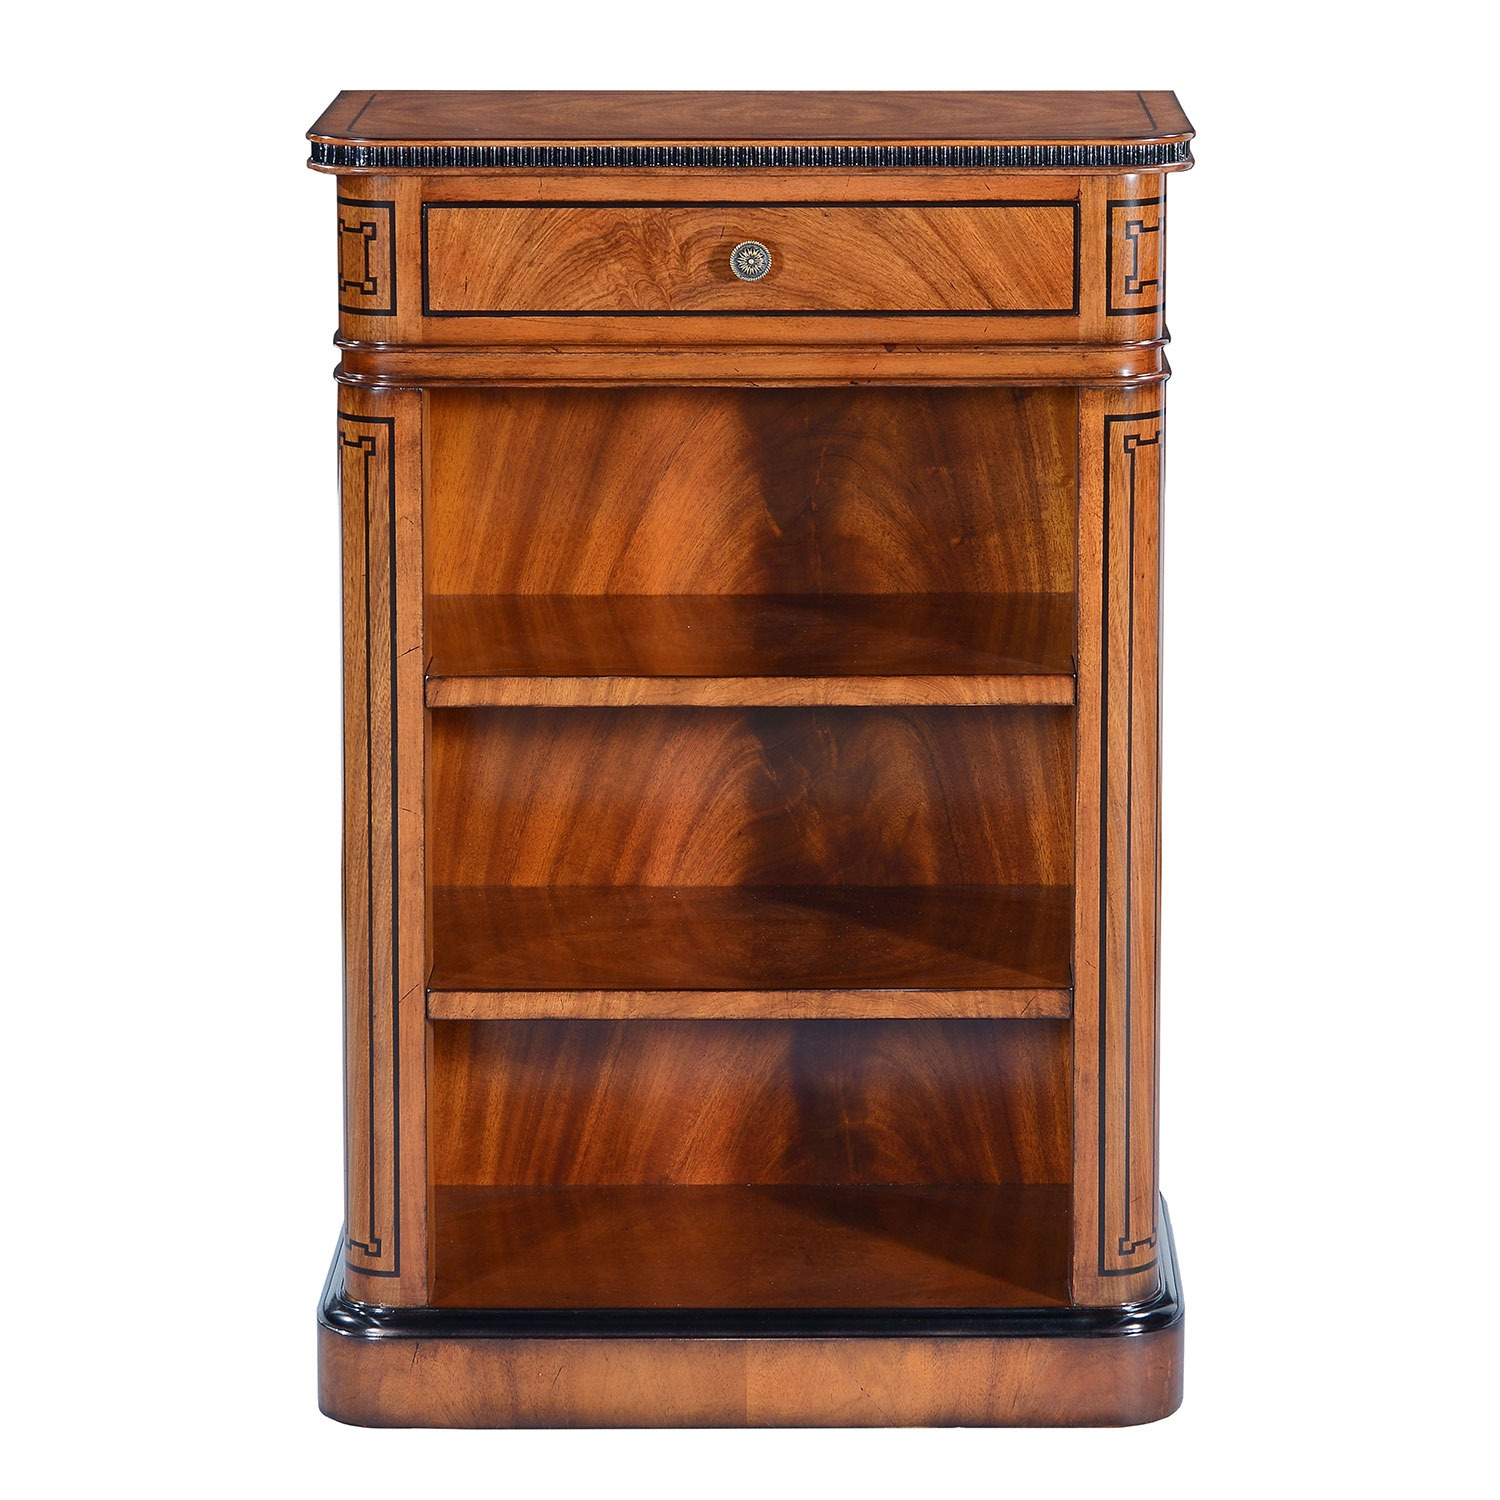 Thomas Hope style mahogany & ebonised open bookcase - 24in